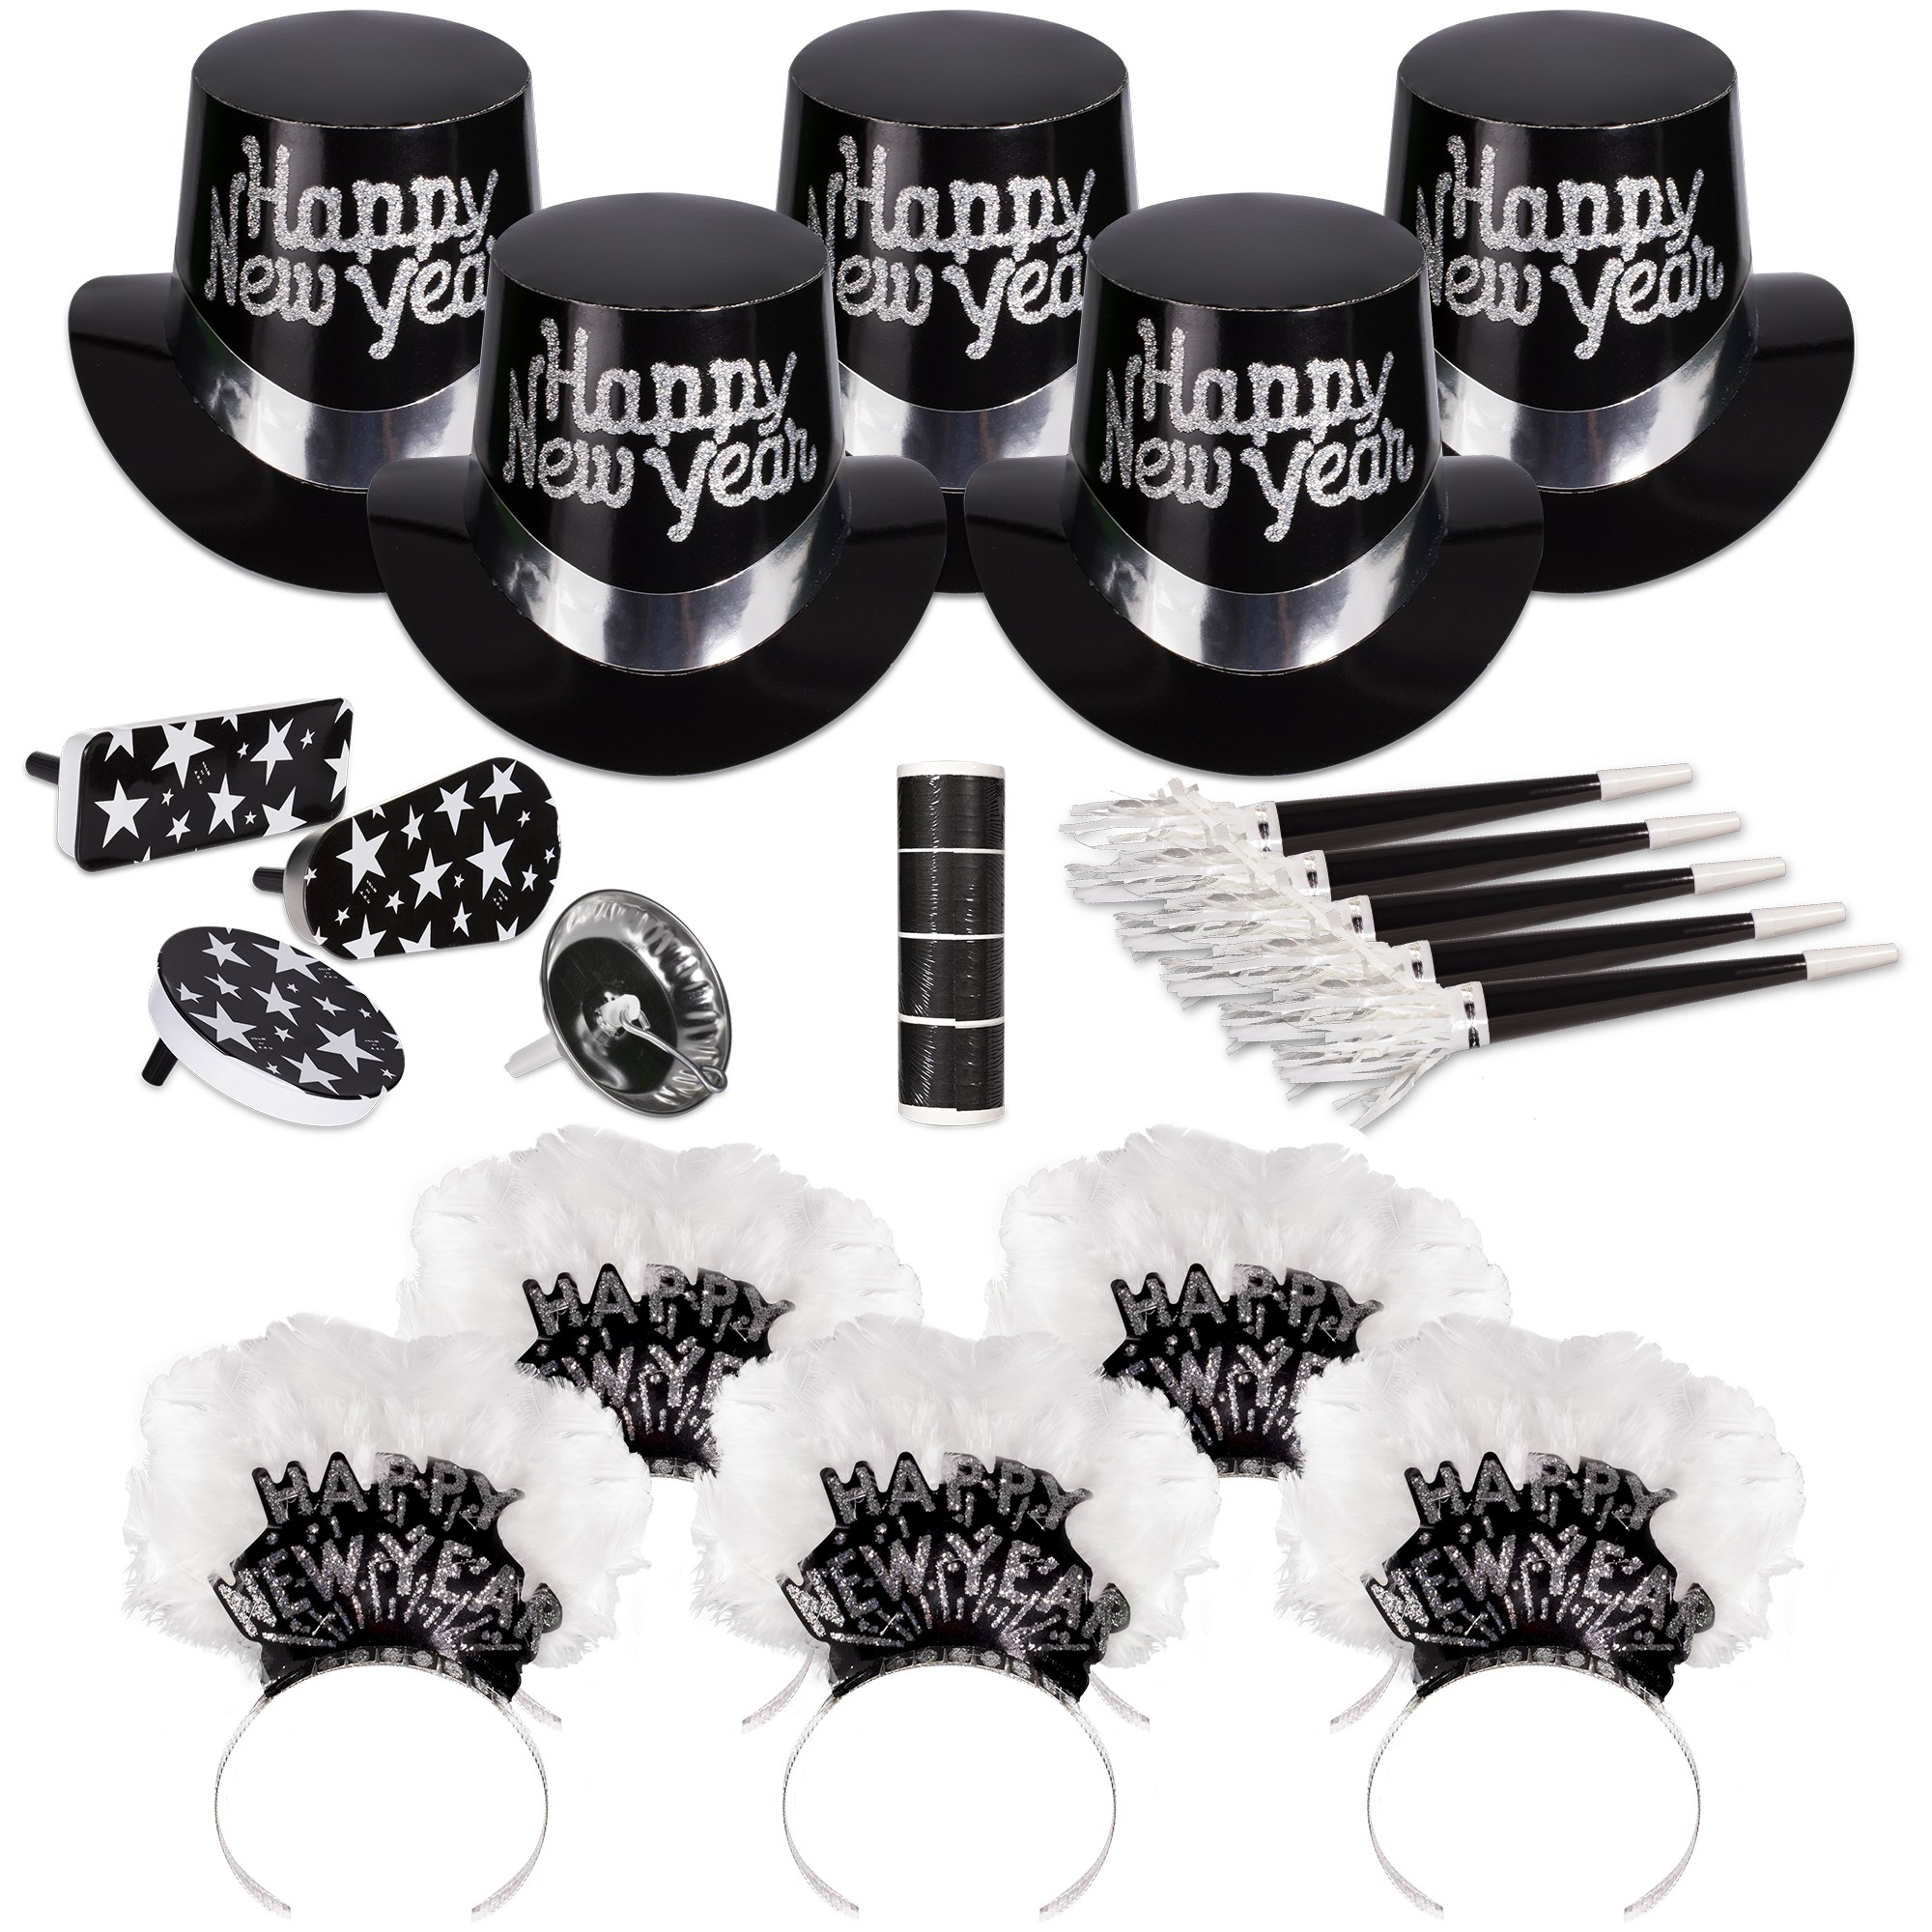 Grand Silver New Year's Eve Party Kit for 50 People